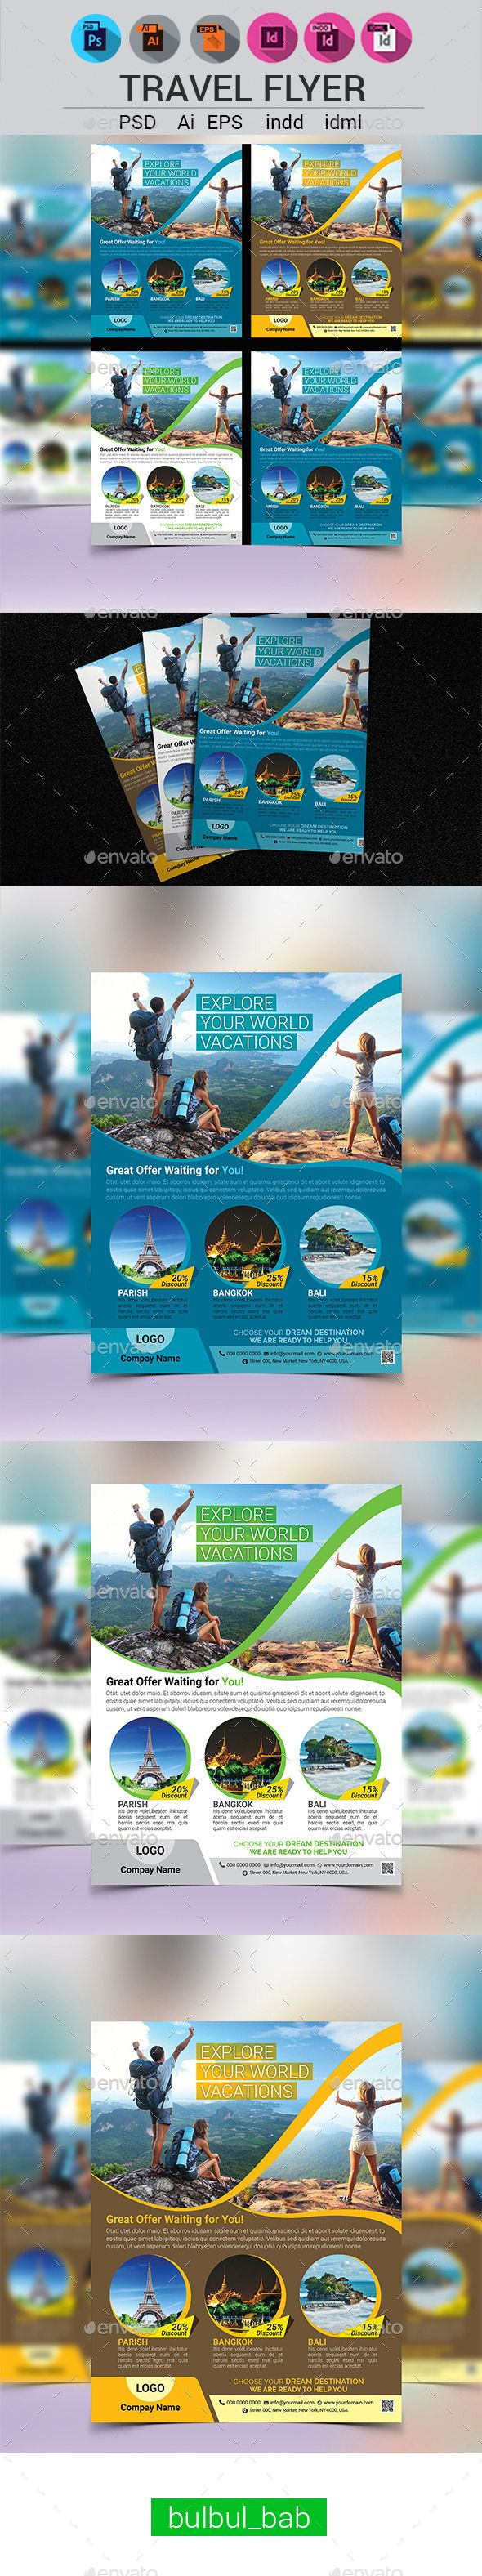 holiday travel tour flyer template holiday flyer template and holiday travel tour flyer template holidays events